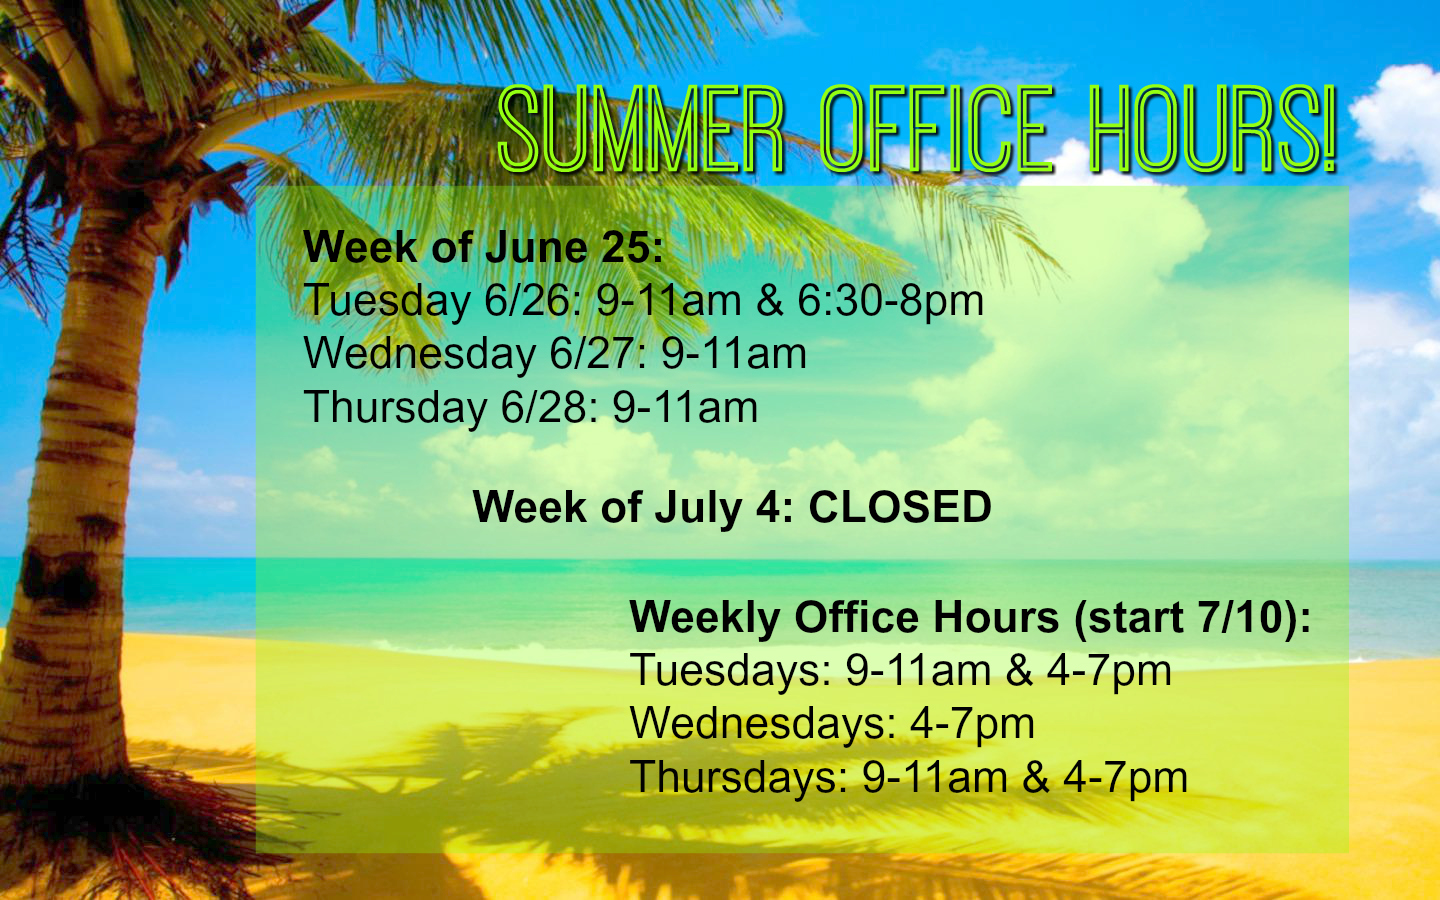 Summer Office Hours are here!